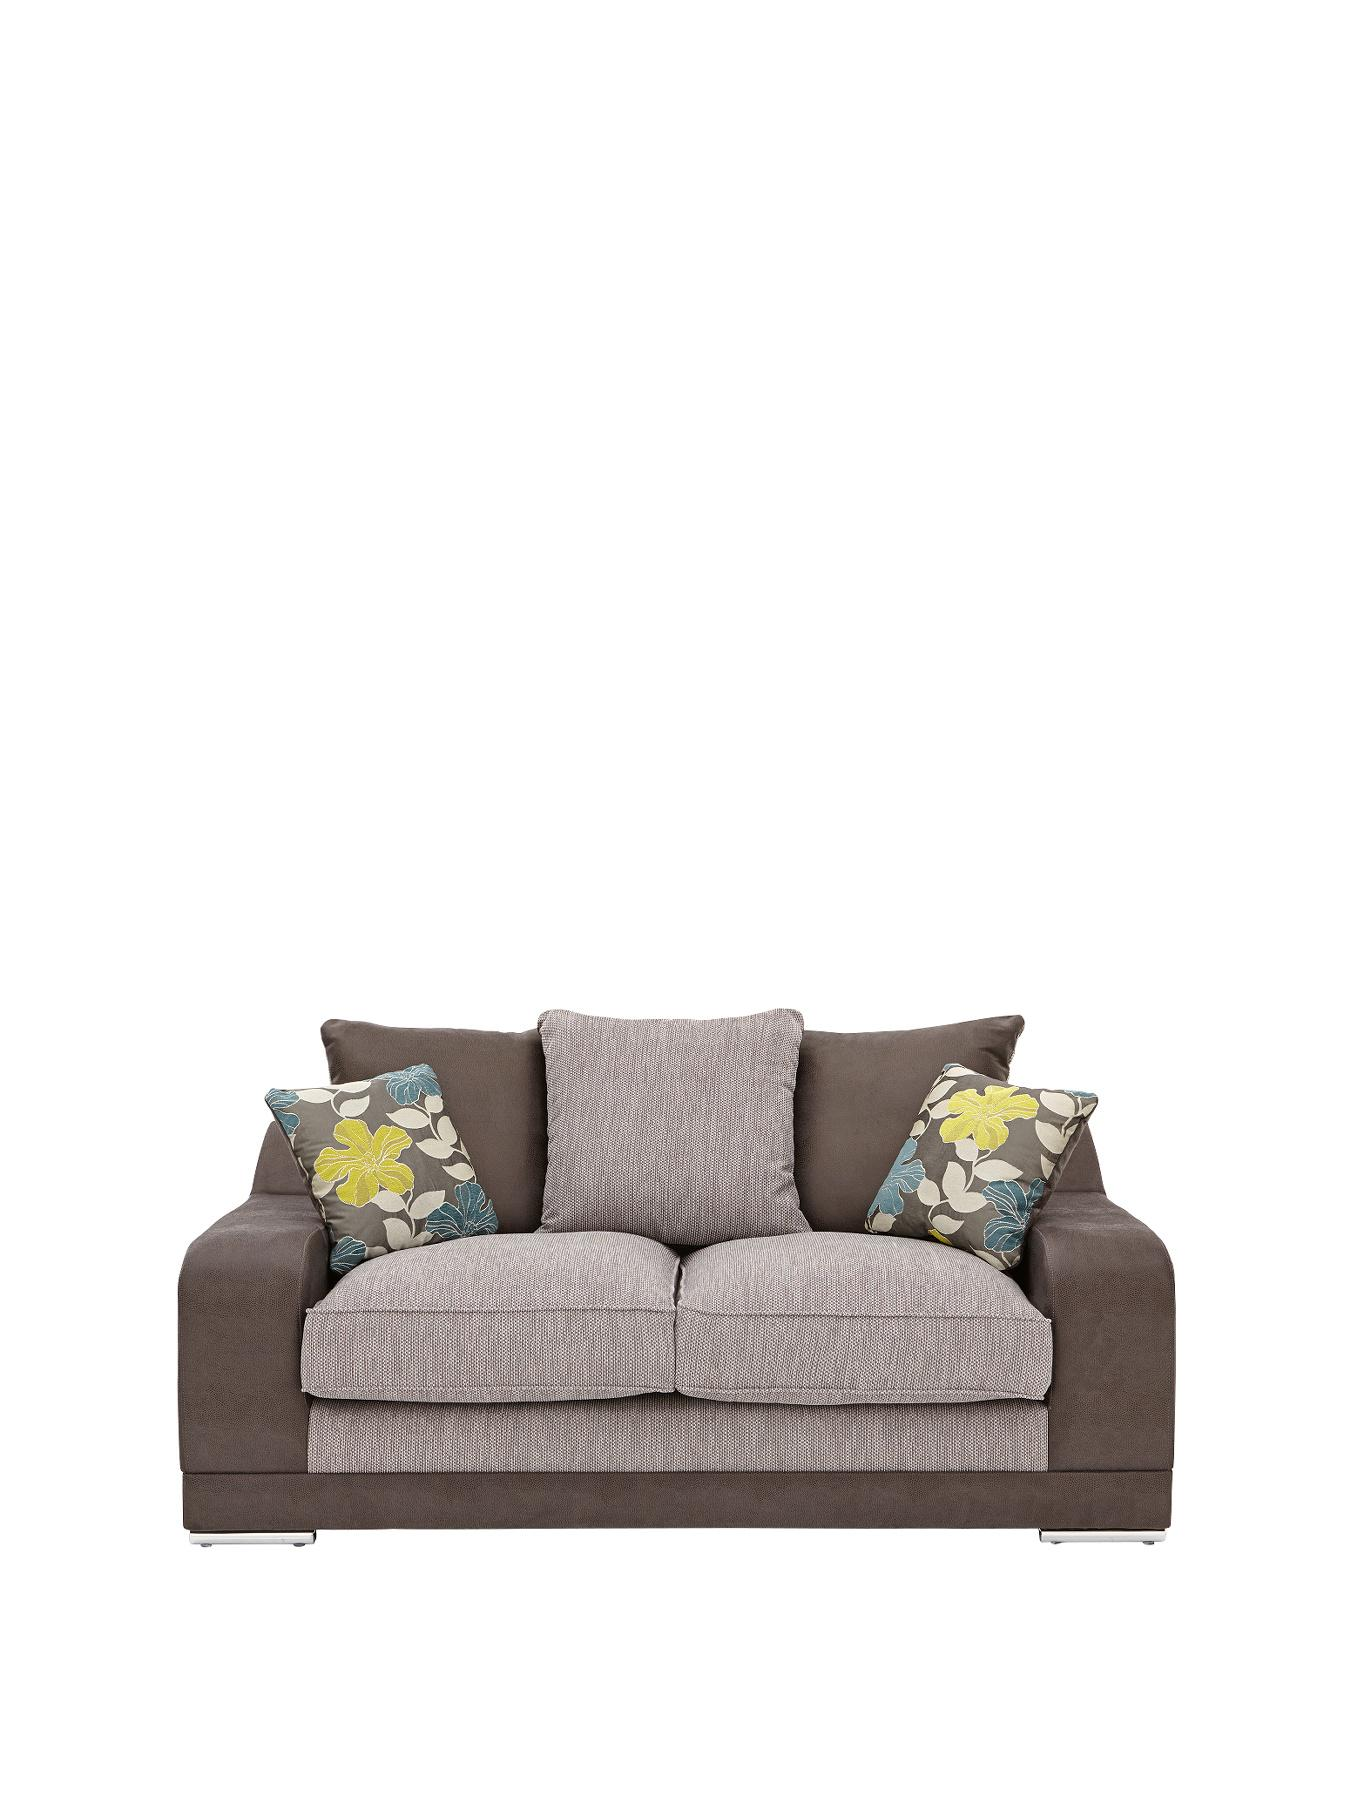 Ravenna 2-Seater Sofa - Grey, Grey